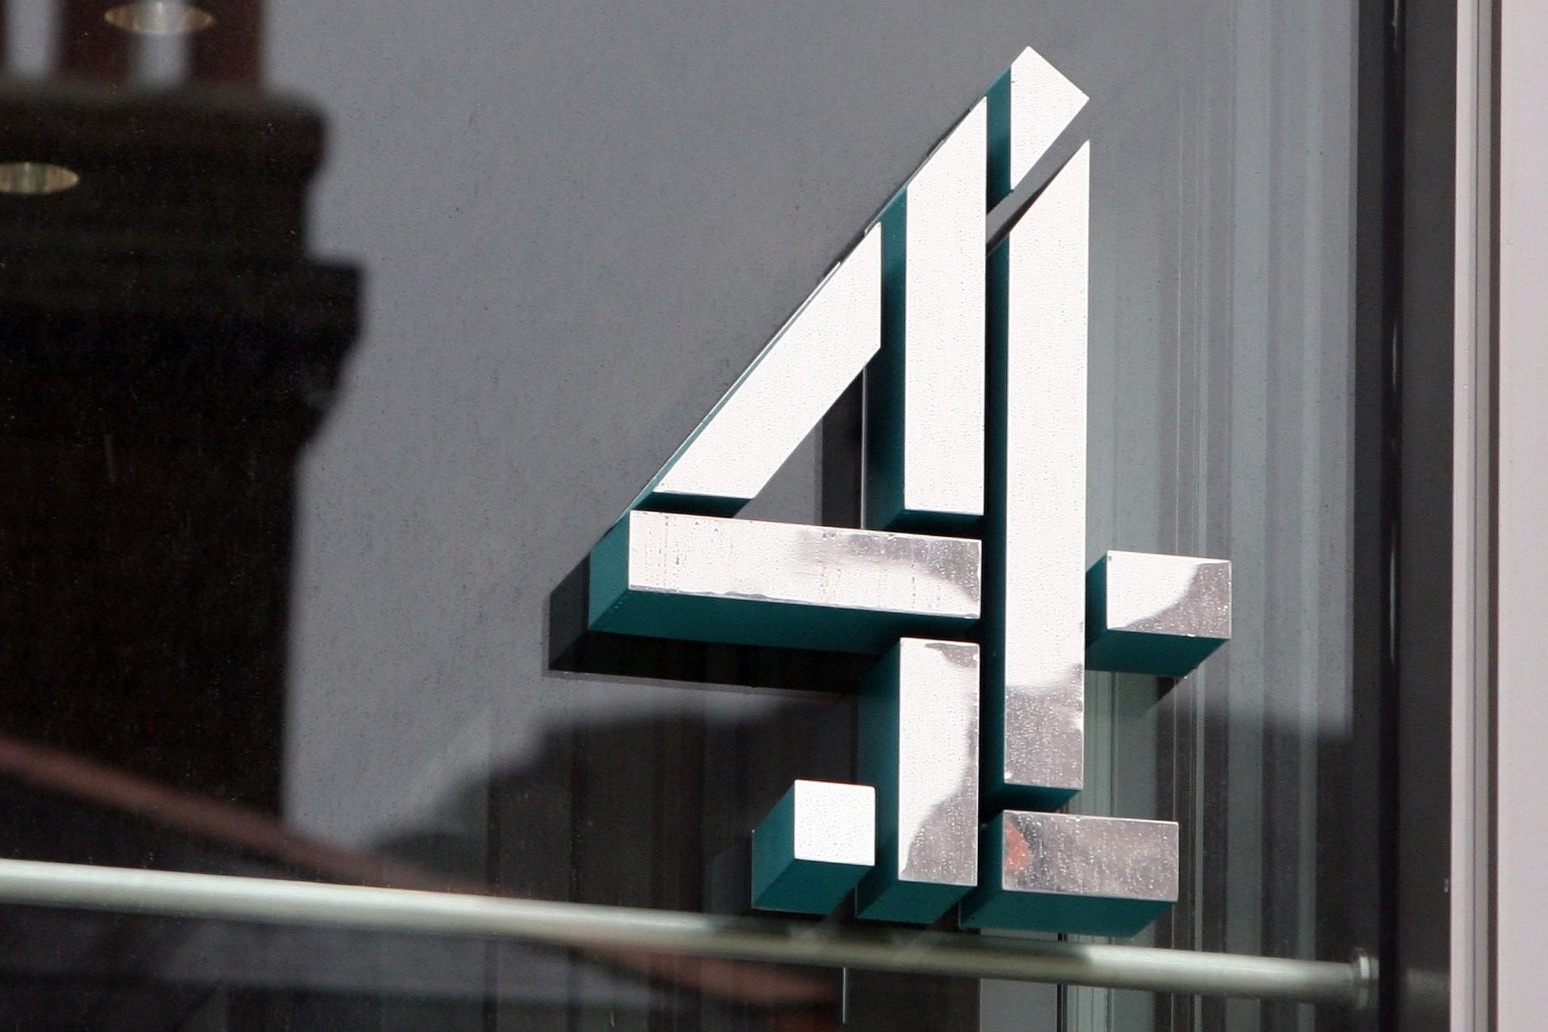 Sale of Channel 4 a 'high-risk and damaging path' – chairman